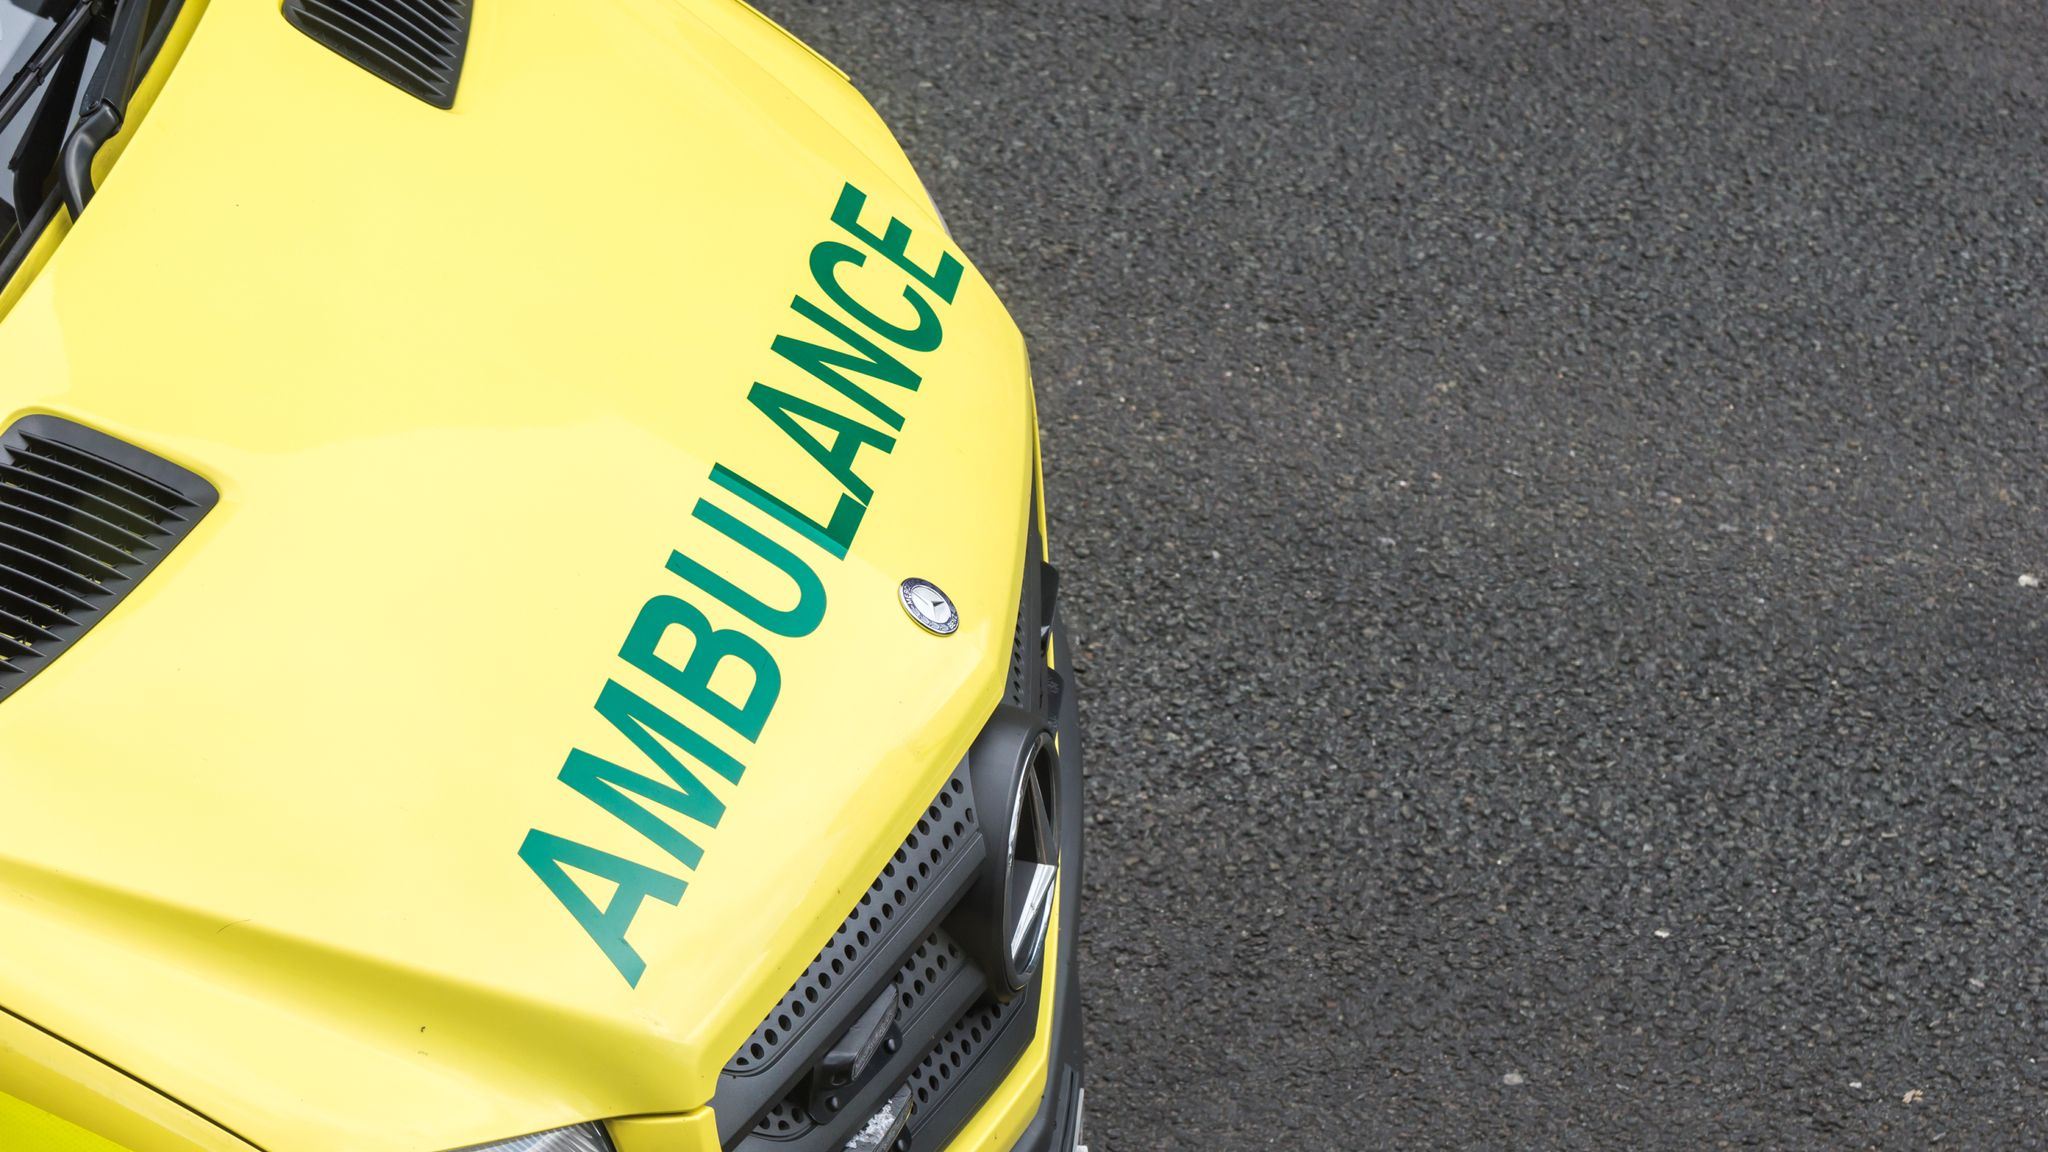 Tree falling on car kills two people in Cotswolds